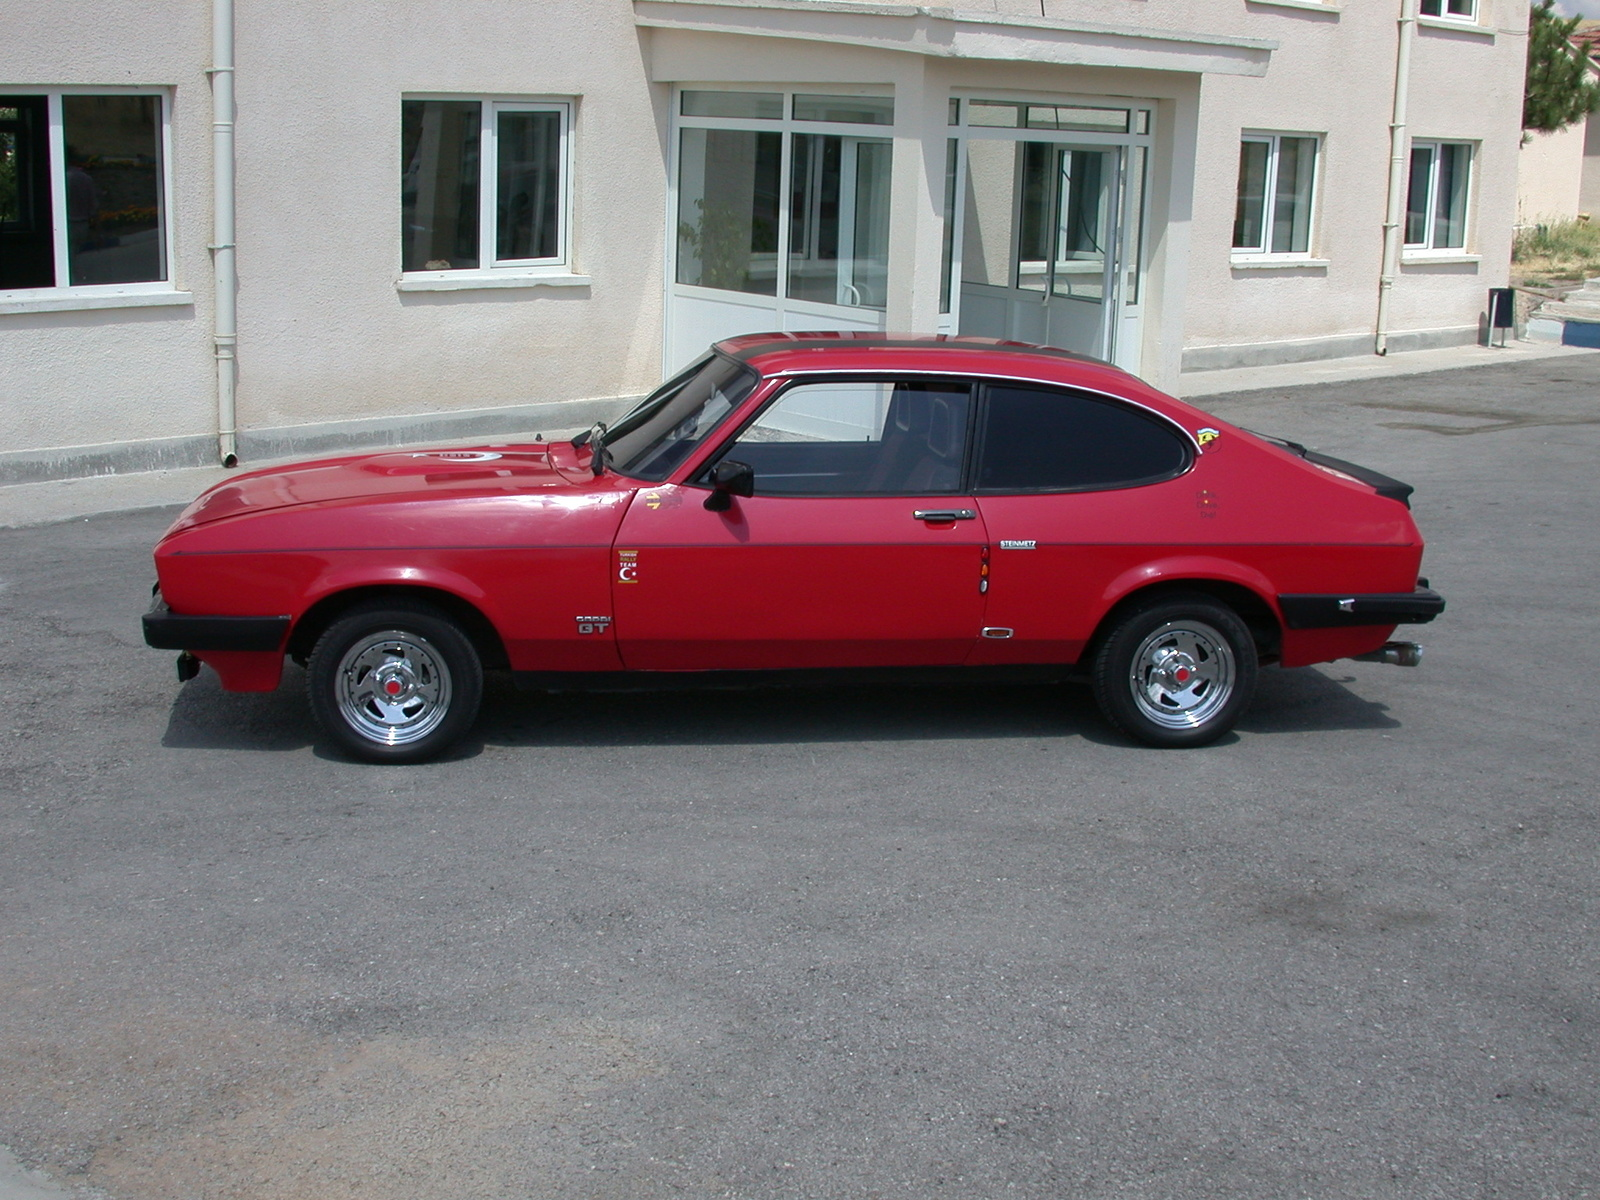 Ford capri 1980 photo - 4